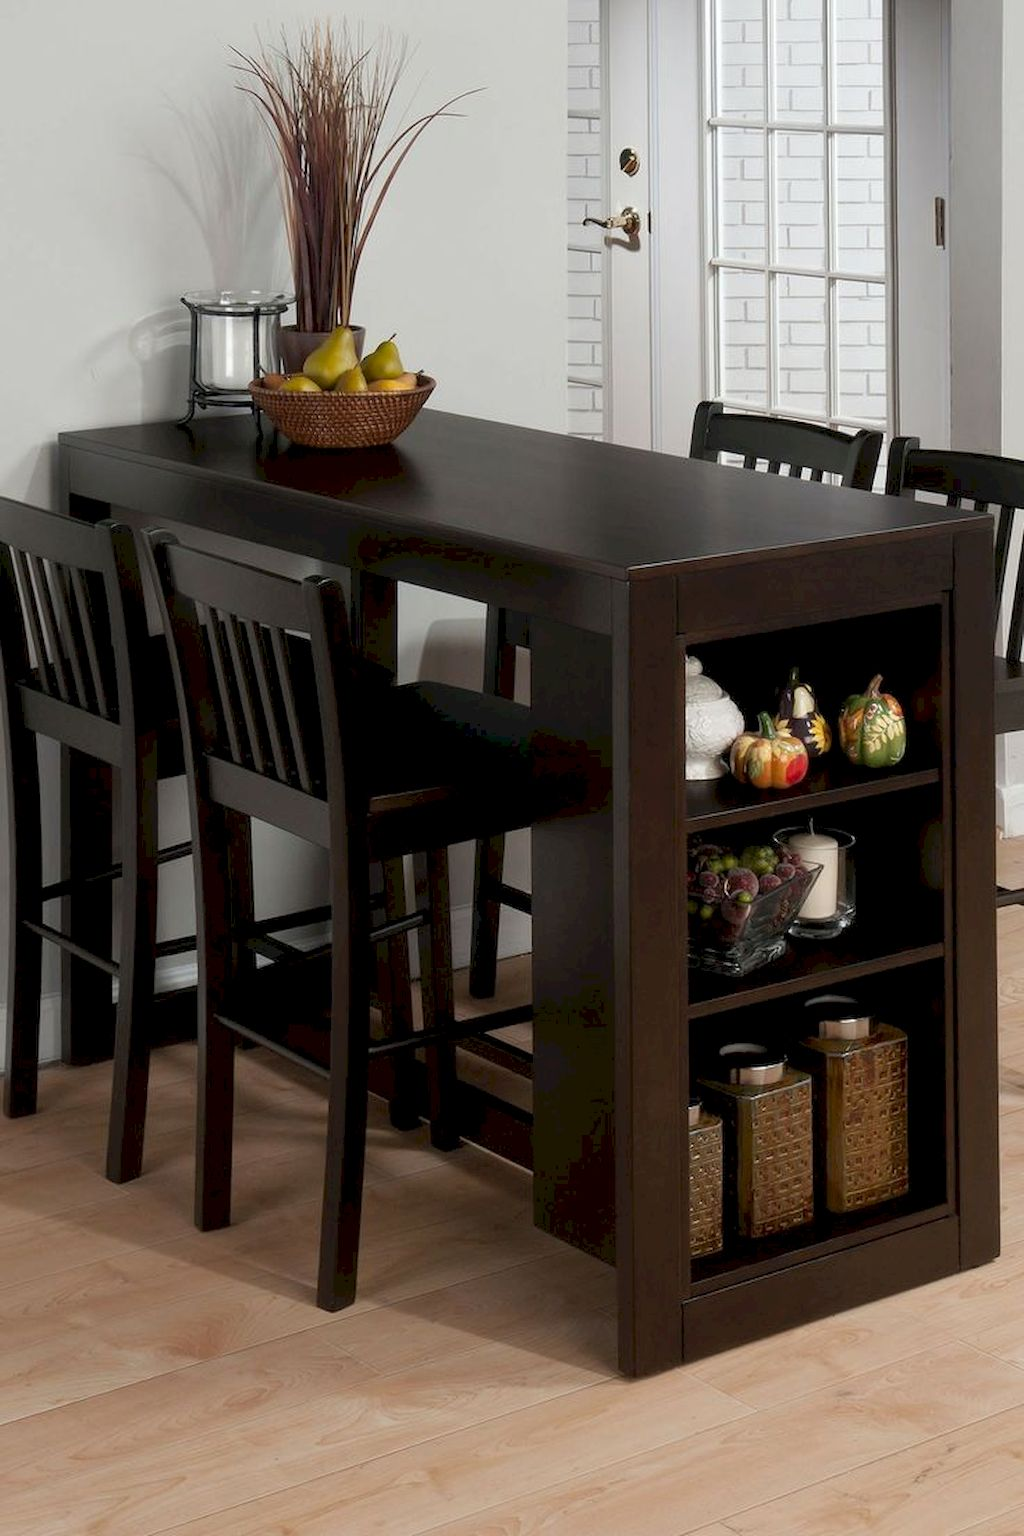 Small Island Kitchen Table012